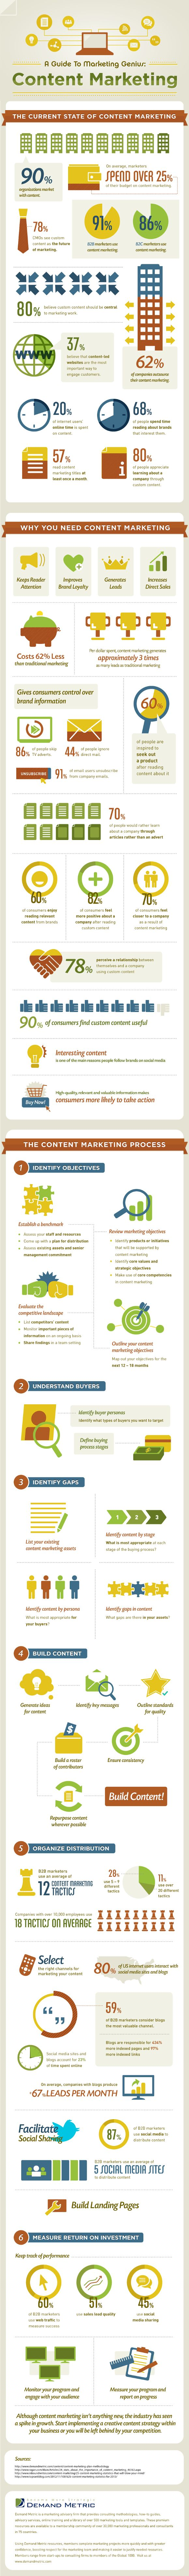 infografikcontentmarketing